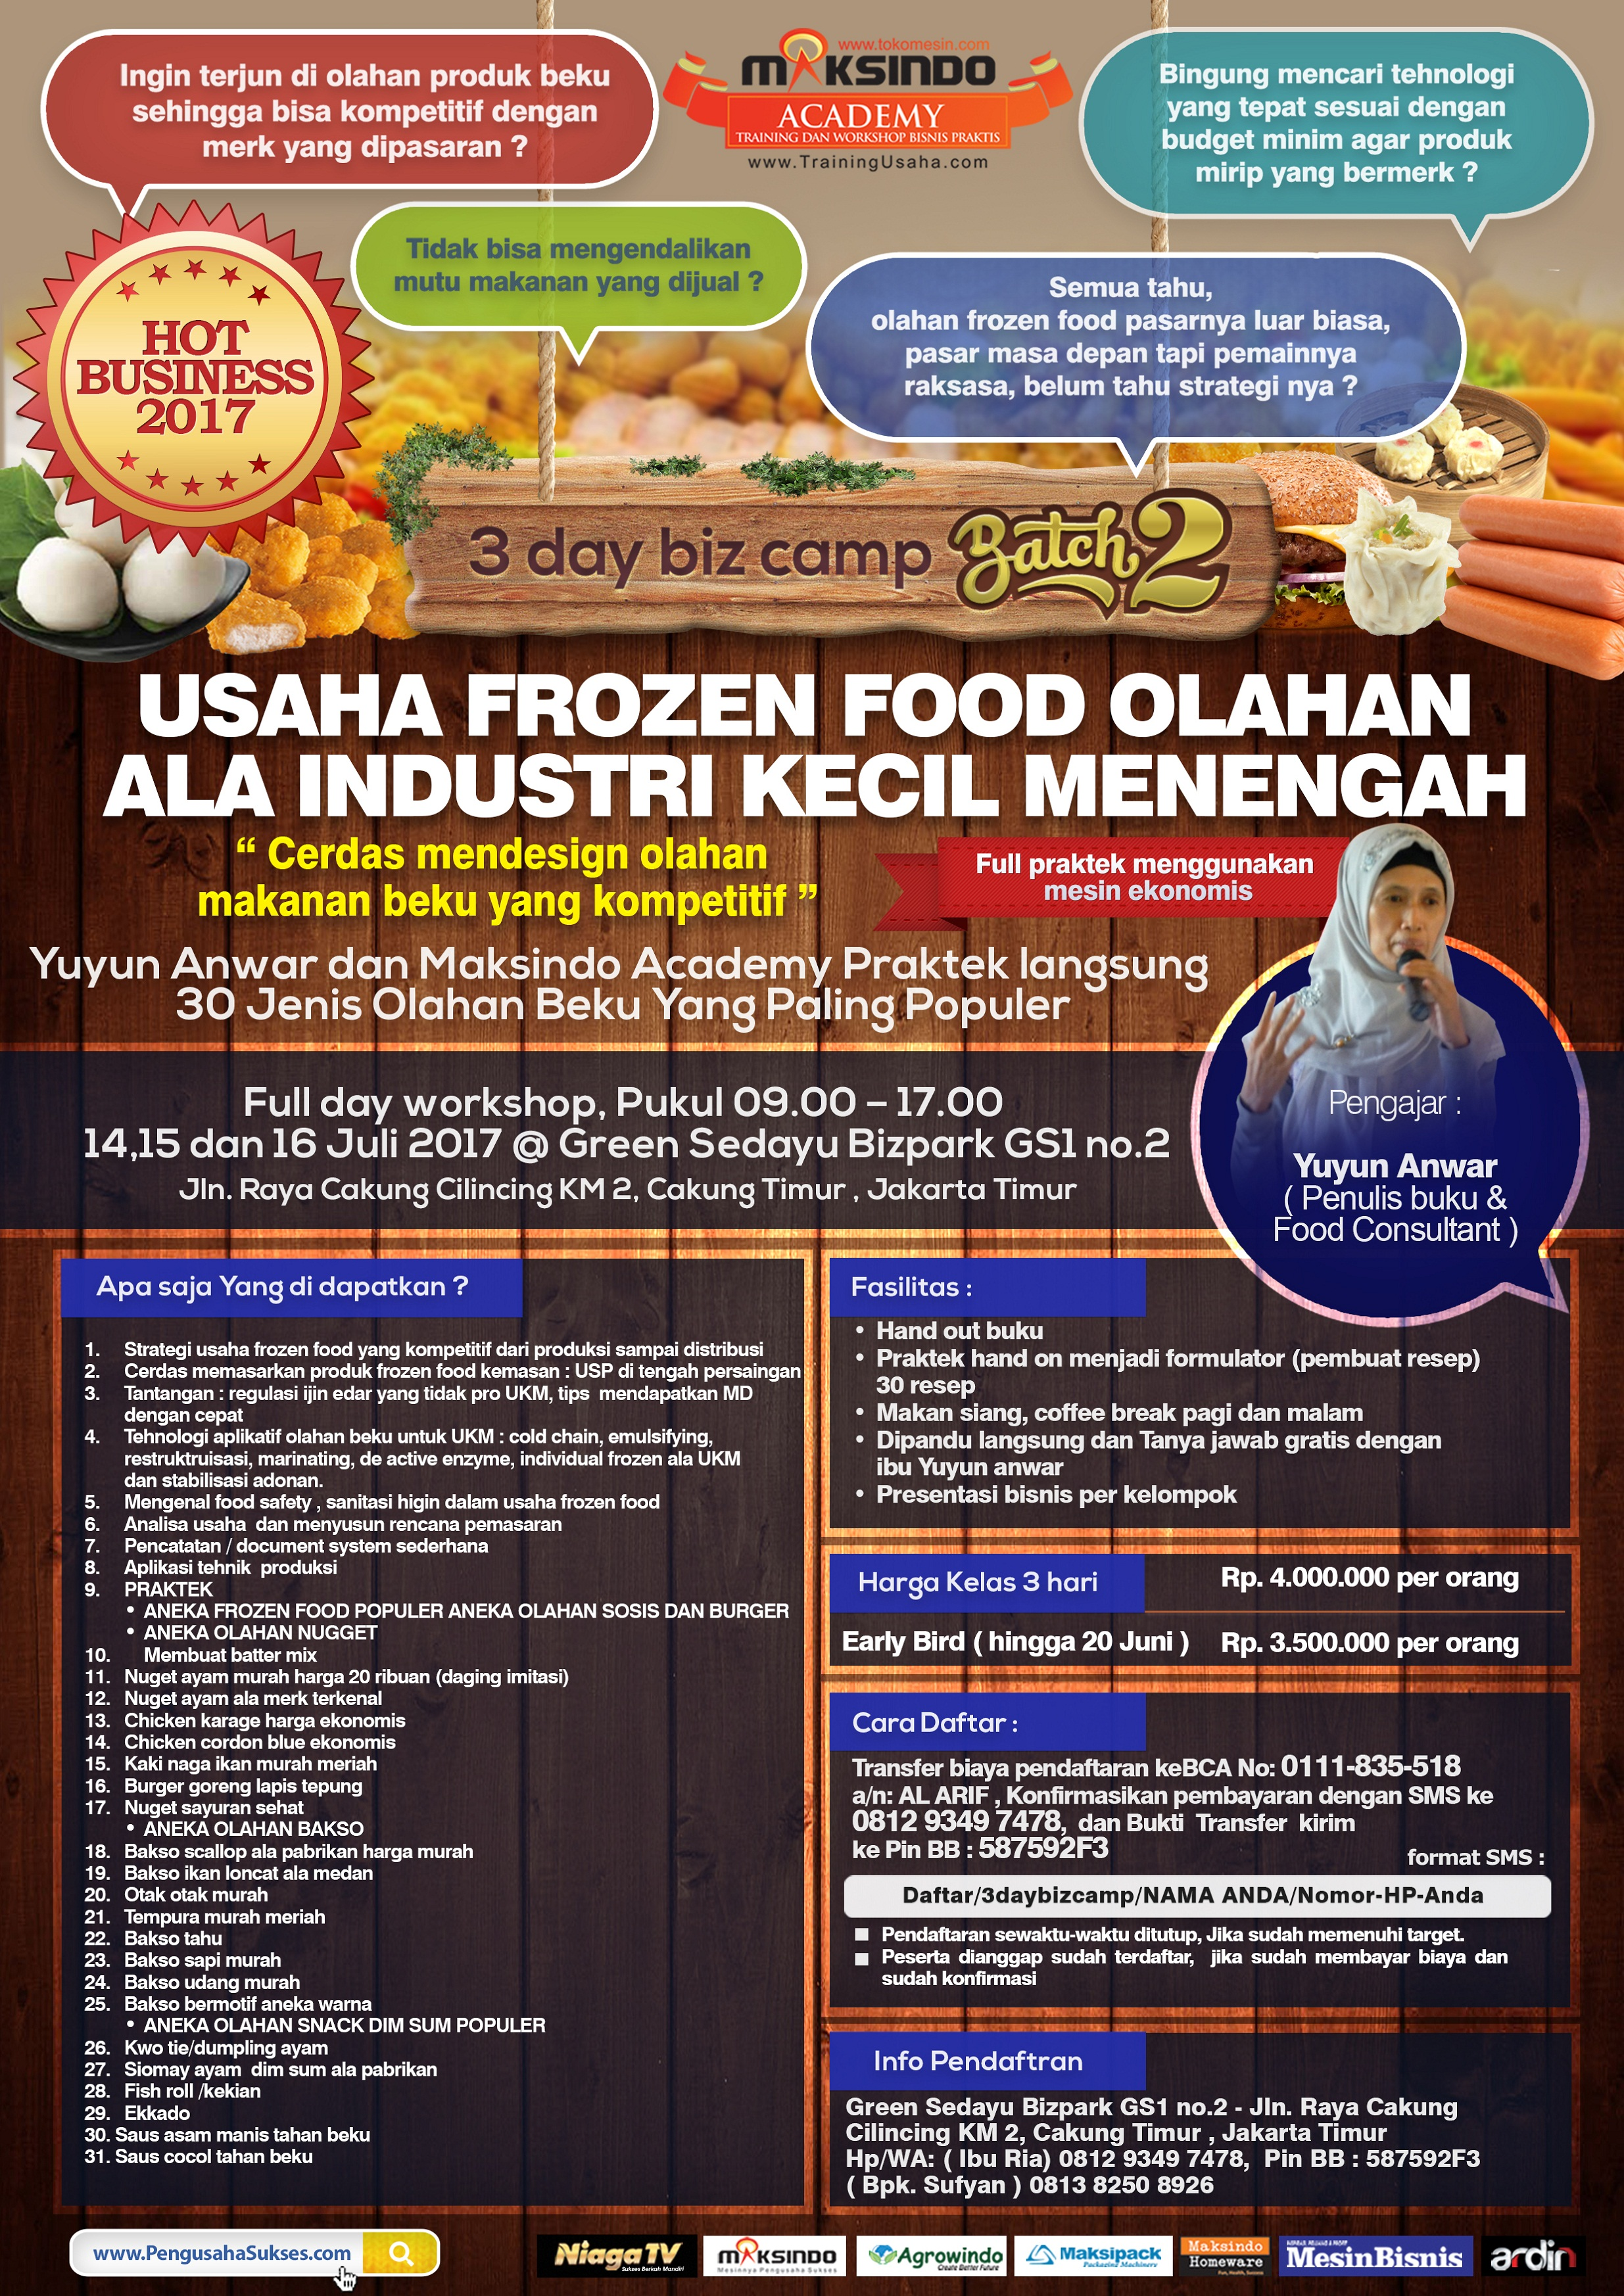 Training Usaha Frozen Food, 14-16 Juli 2017